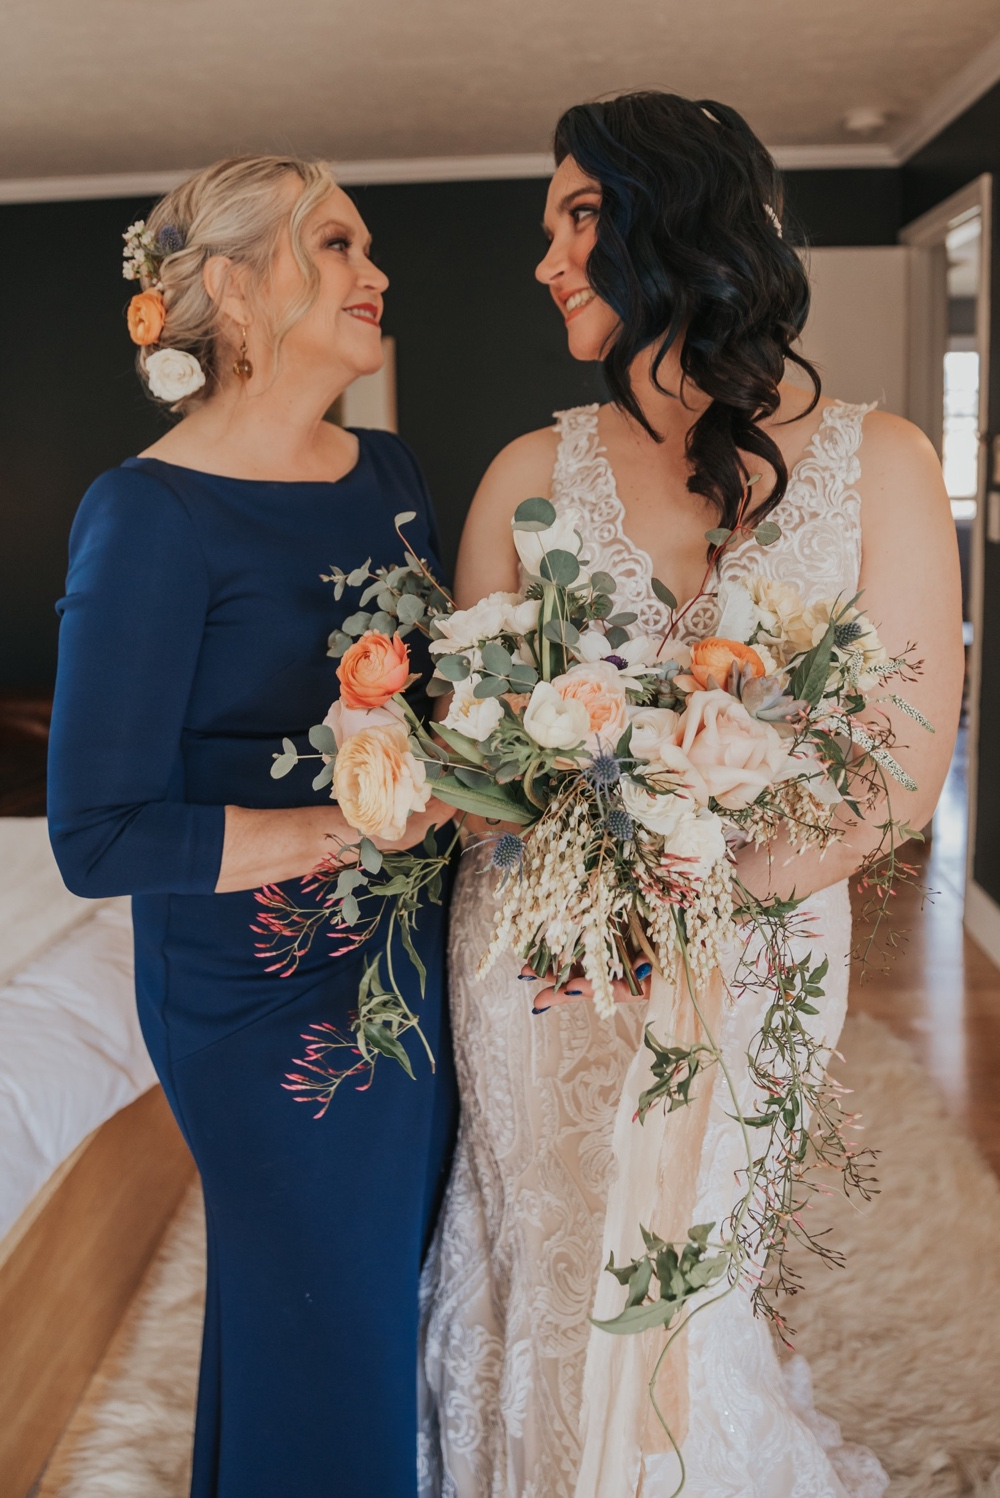 038_Katie&Roy3.23.19-1924_the-colony-wedding-venue_best-portland-wedding-photographers_downtown-portland-wedding-photographers_-_portland-wedding-photographers-prices_the-colony-wedding-venue-portland.jpg